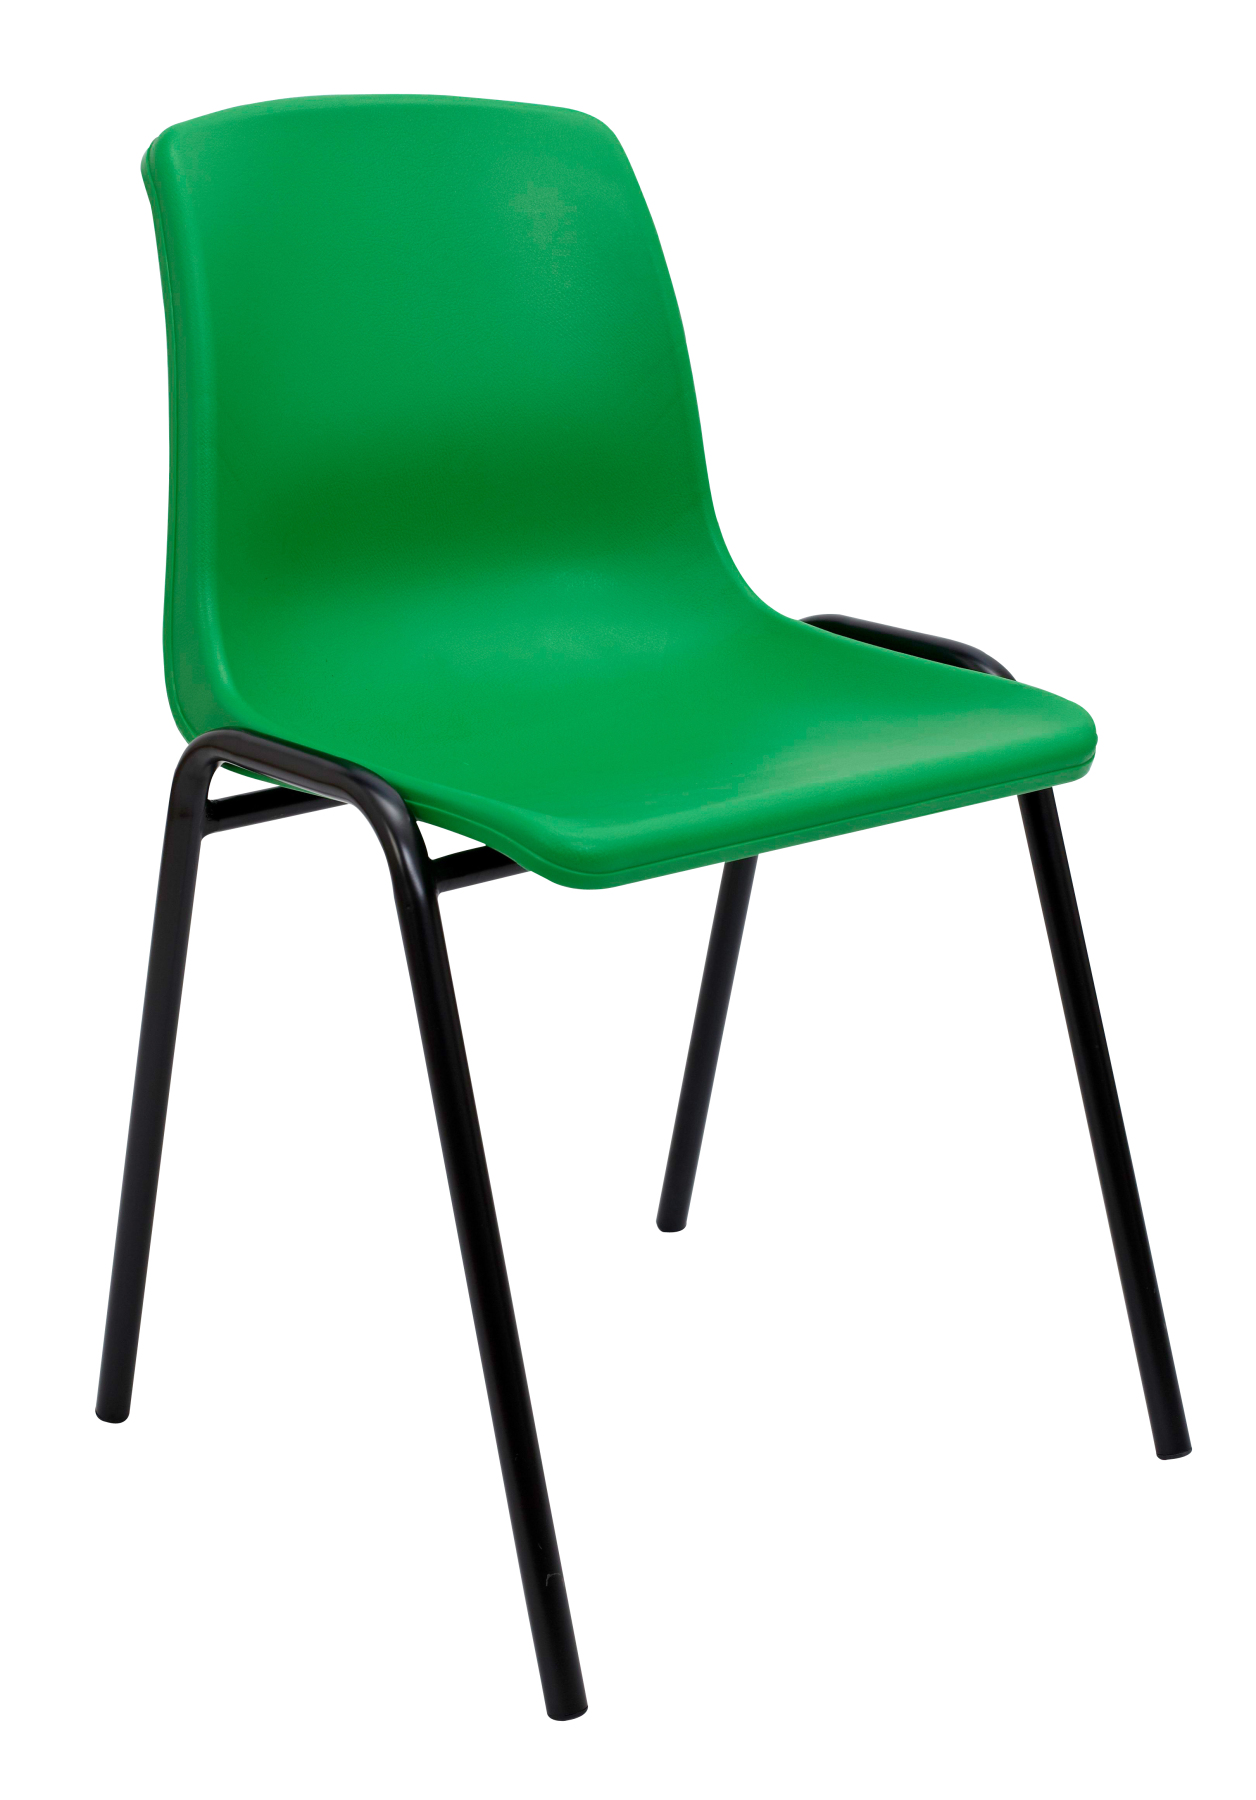 Visitor Chair Desk Ergonomic, Stackable And With Negro Up Seat And Backstop Structure PVC Green Color TAPHOLE AND CRESP